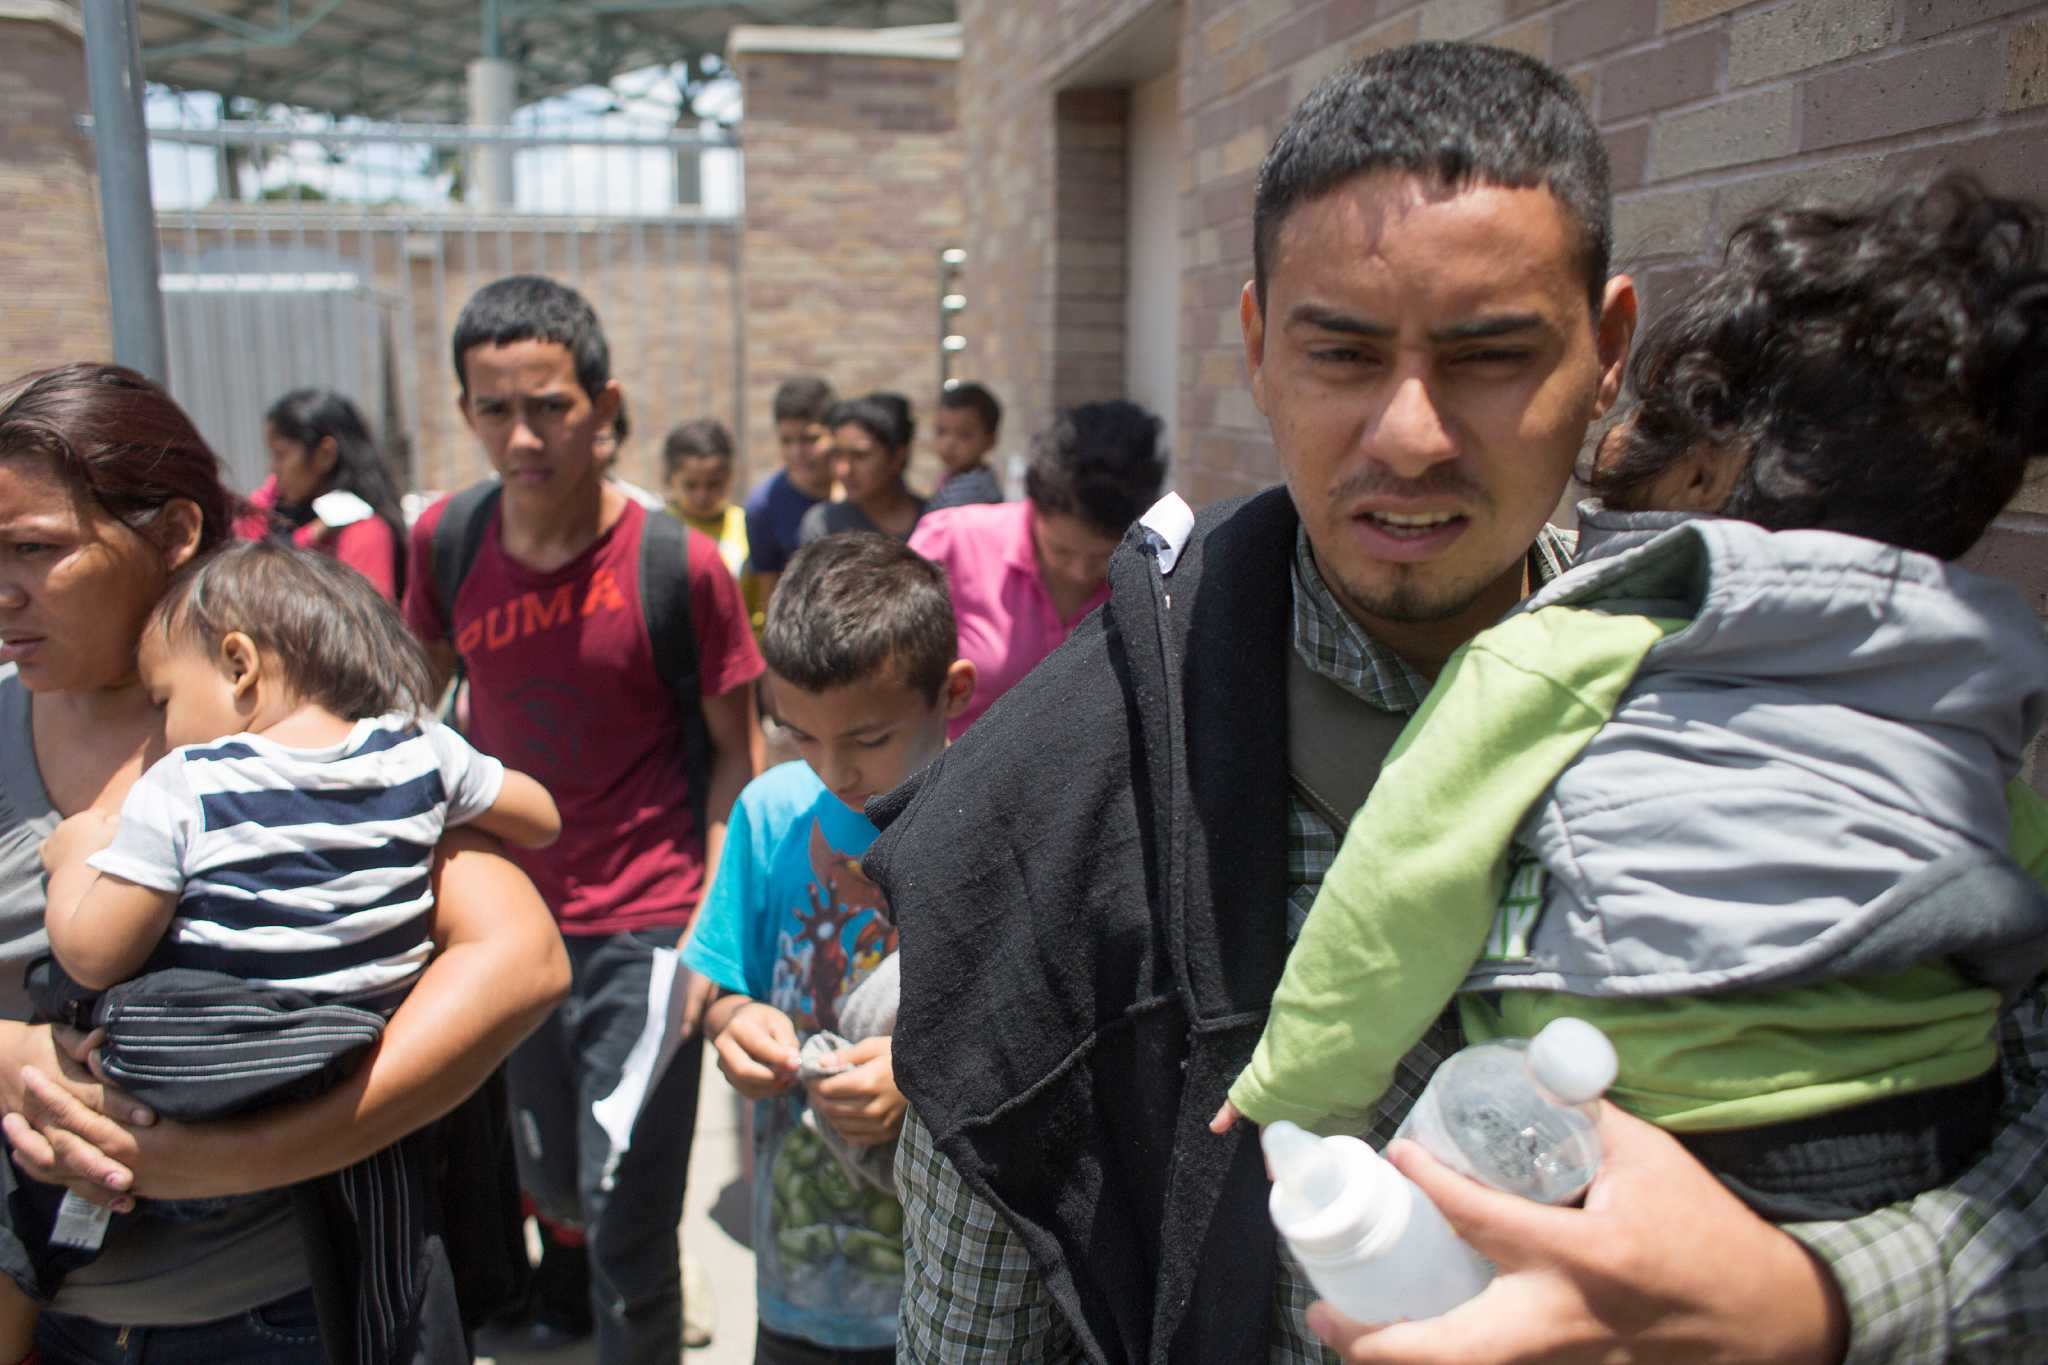 illegal immigration in egypt (egypt parliament passes bill to combat illegal migration, human-smuggling, ahram online (oct17, 2016)) the purpose of the law is to combat the increase in trafficking of illegal migrants departing from the egyptian shore of the mediterranean.